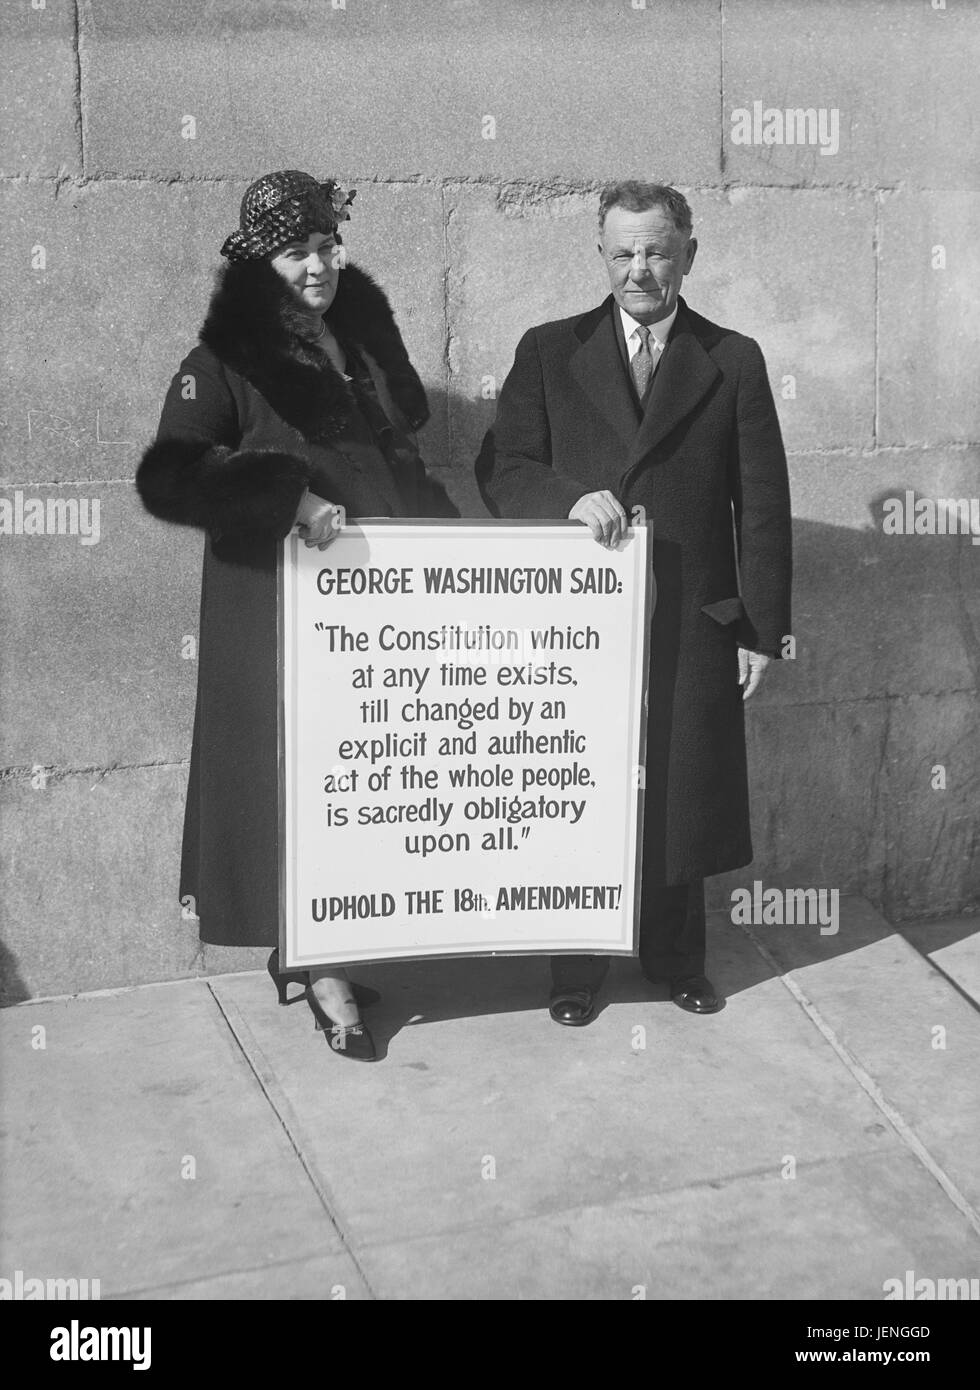 Man and Woman Standing with Sign Supporting U.S. Constitution's 18th Amendment, Washington DC, USA, Harris & - Stock Image